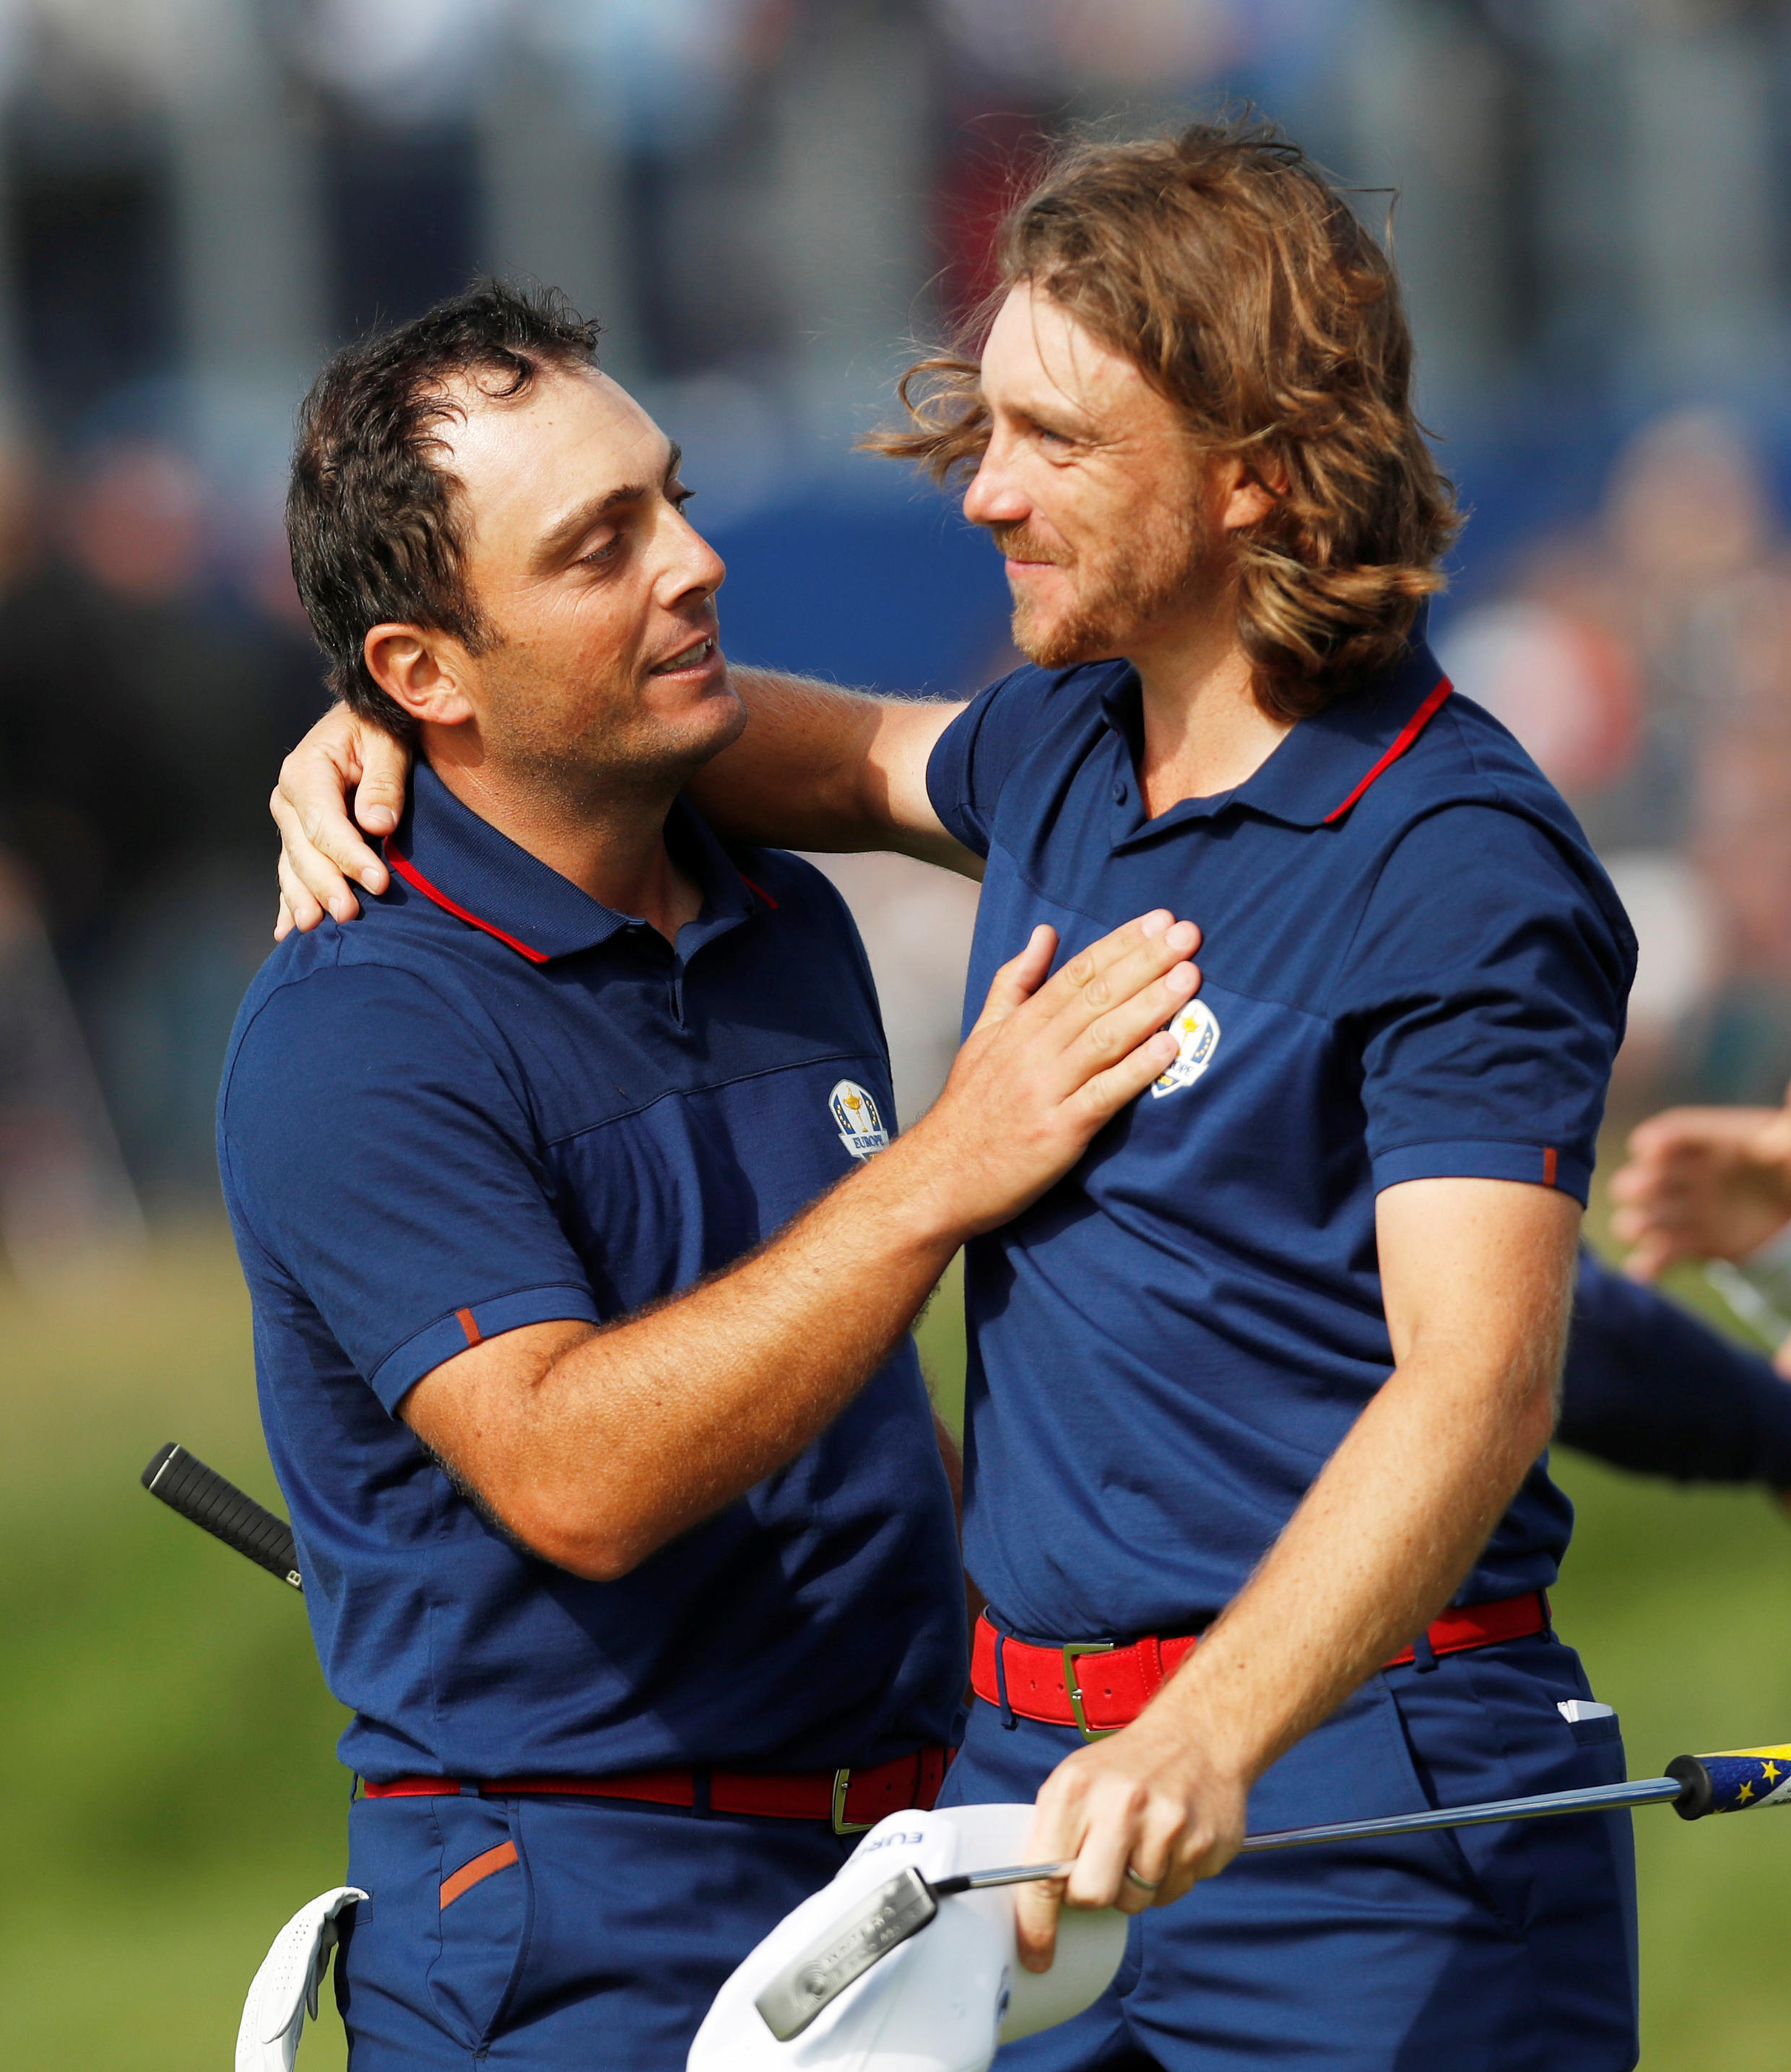 Francesco Molinari (left) and Tommy Fleetwood have claimed victories in all four of their matches at the 2018 Ryder Cup.